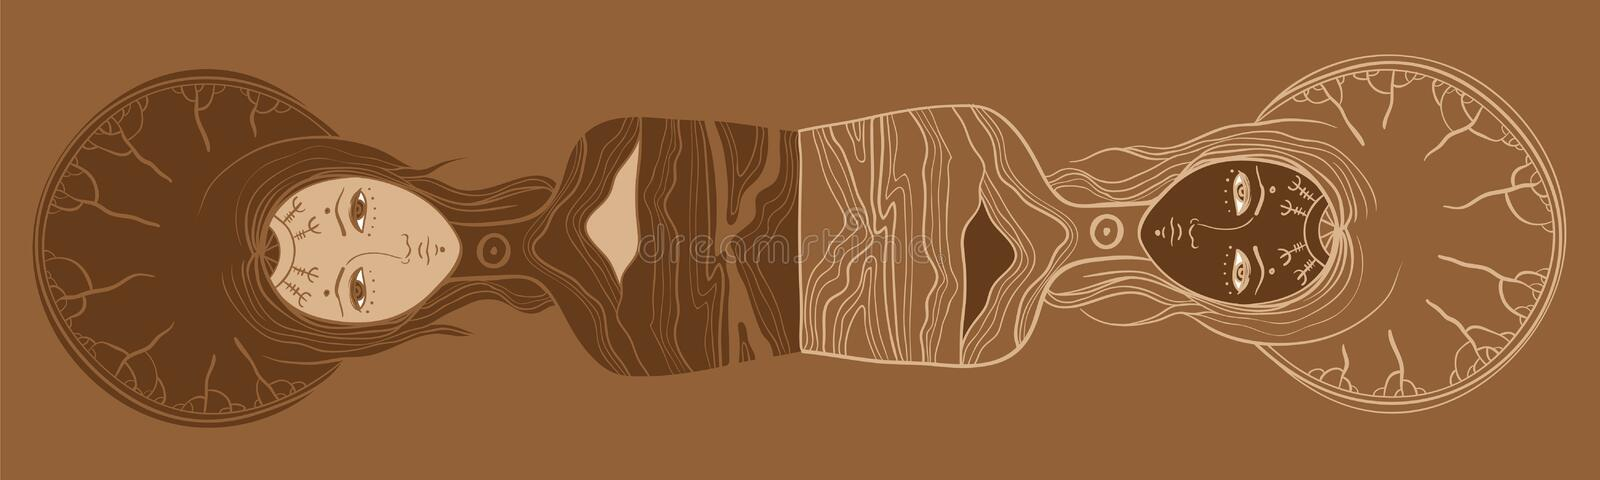 Vector illustration of twins, Yin and yang, body and soul, dualism royalty free illustration